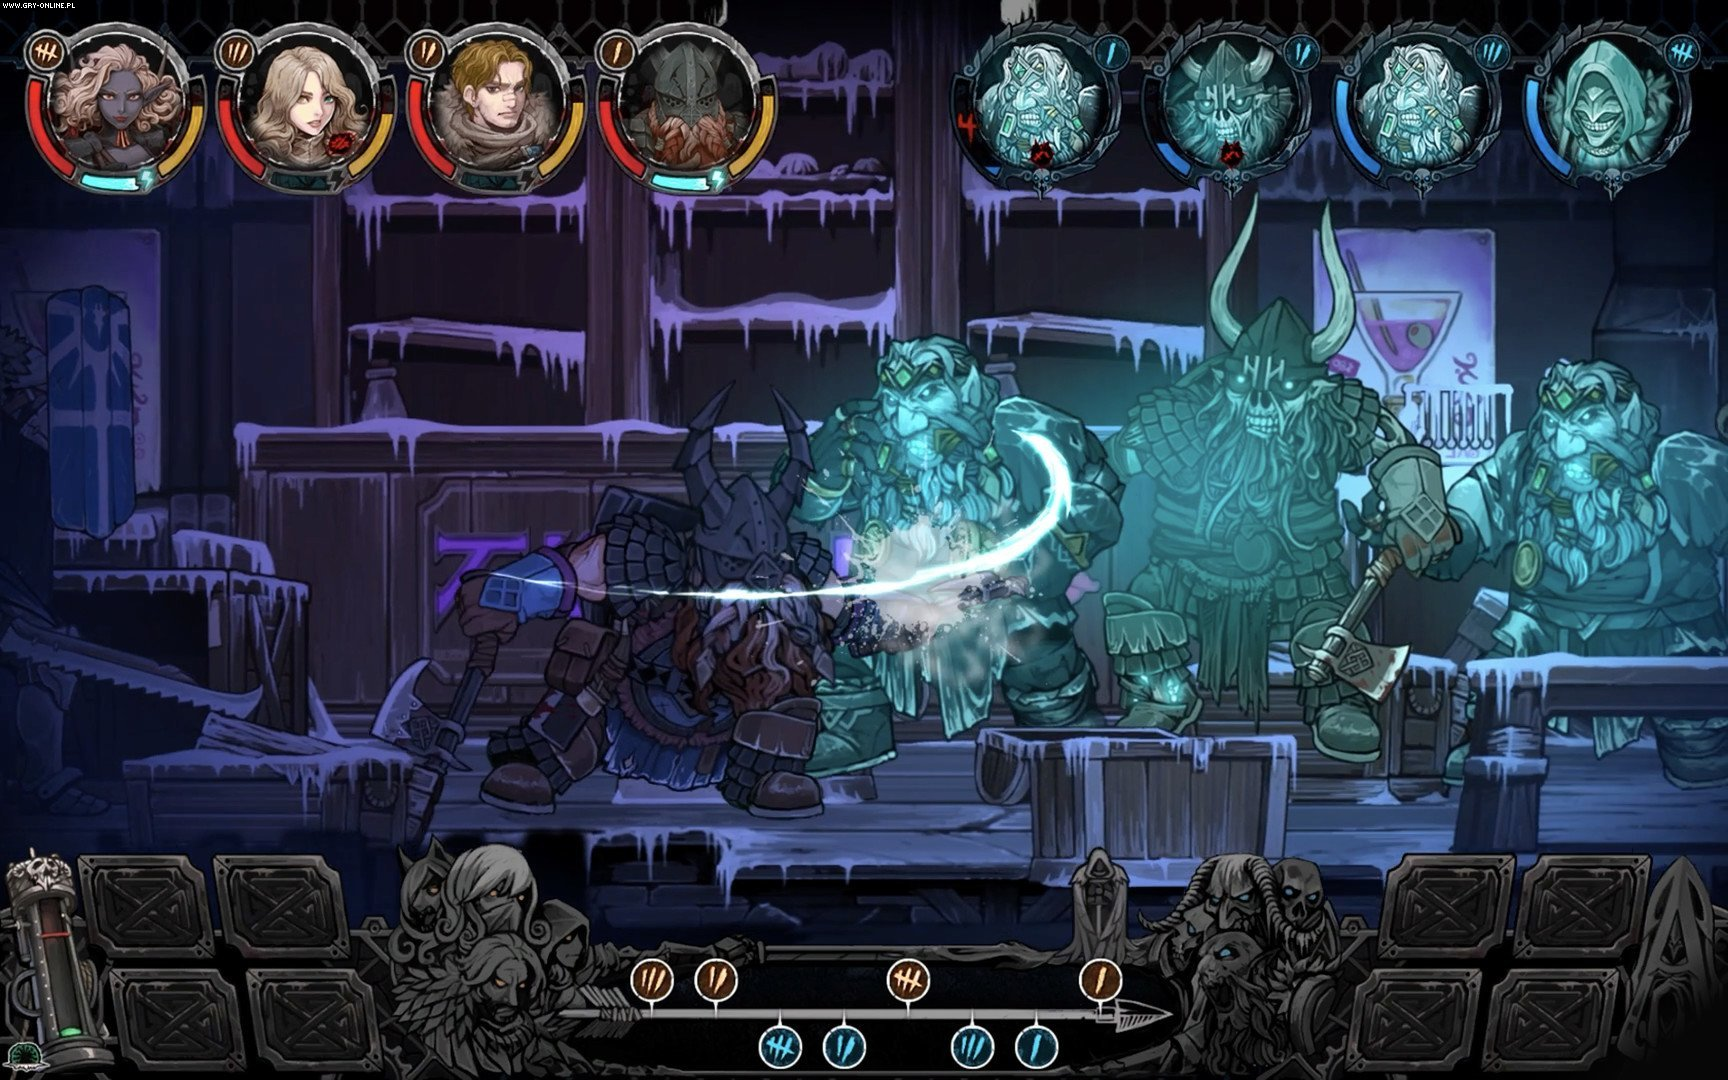 Vambrace: Cold Soul PC, PS4, XONE, Switch Gry Screen 5/20, Devespresso Games, Headup Games